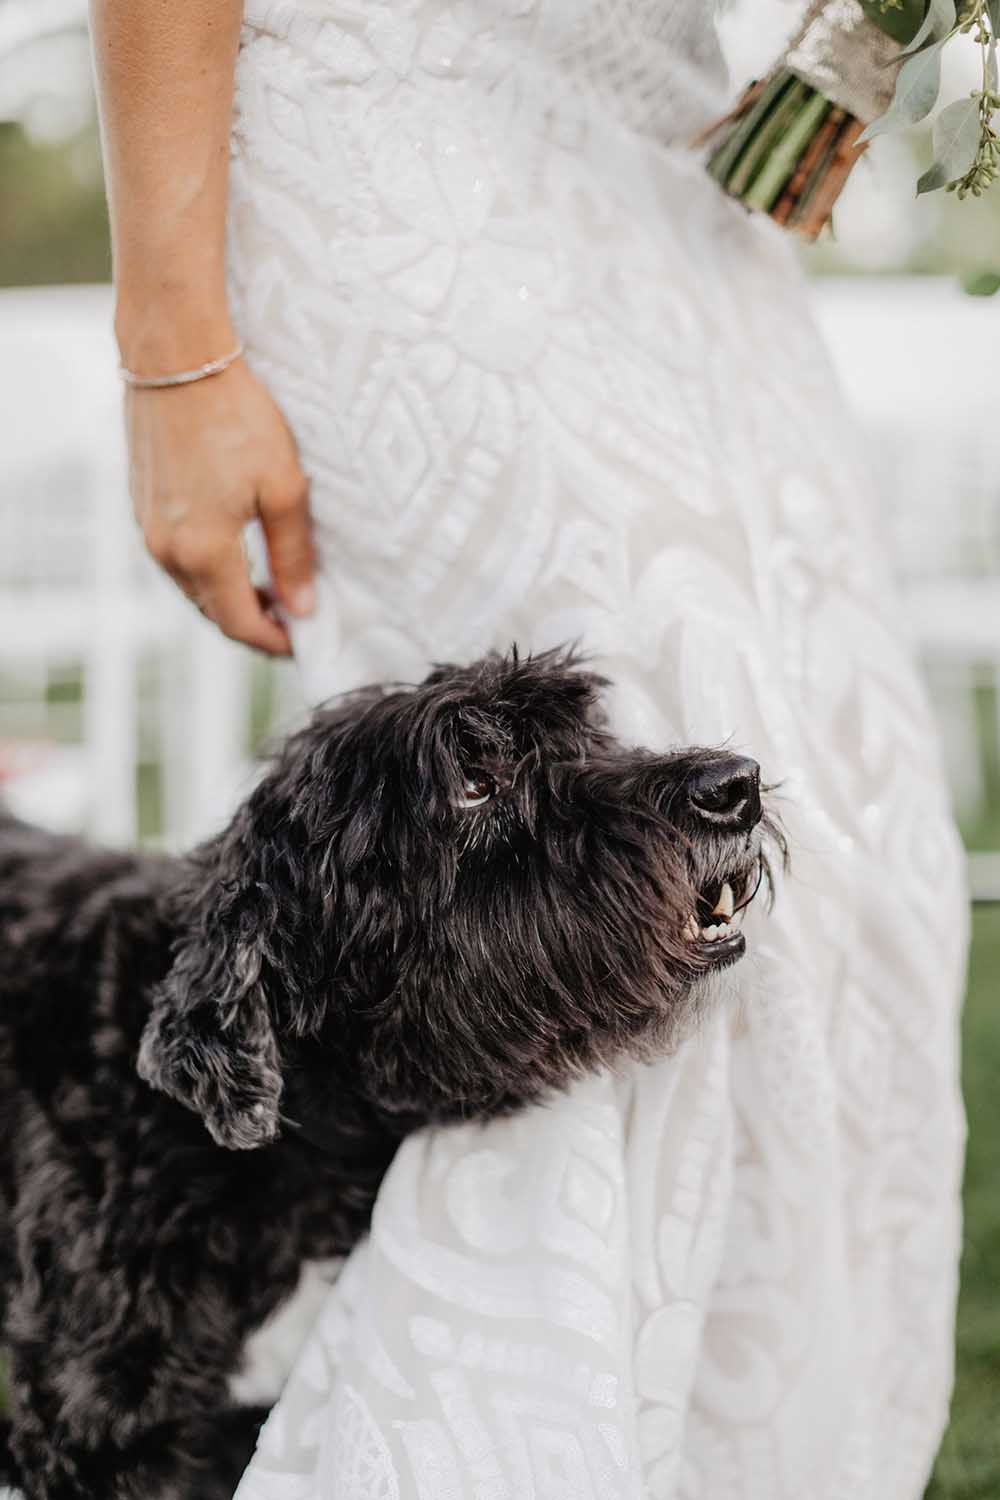 Dog Looking Up to Bride | photo by Emily Green Photography | featured on I Do Y'all